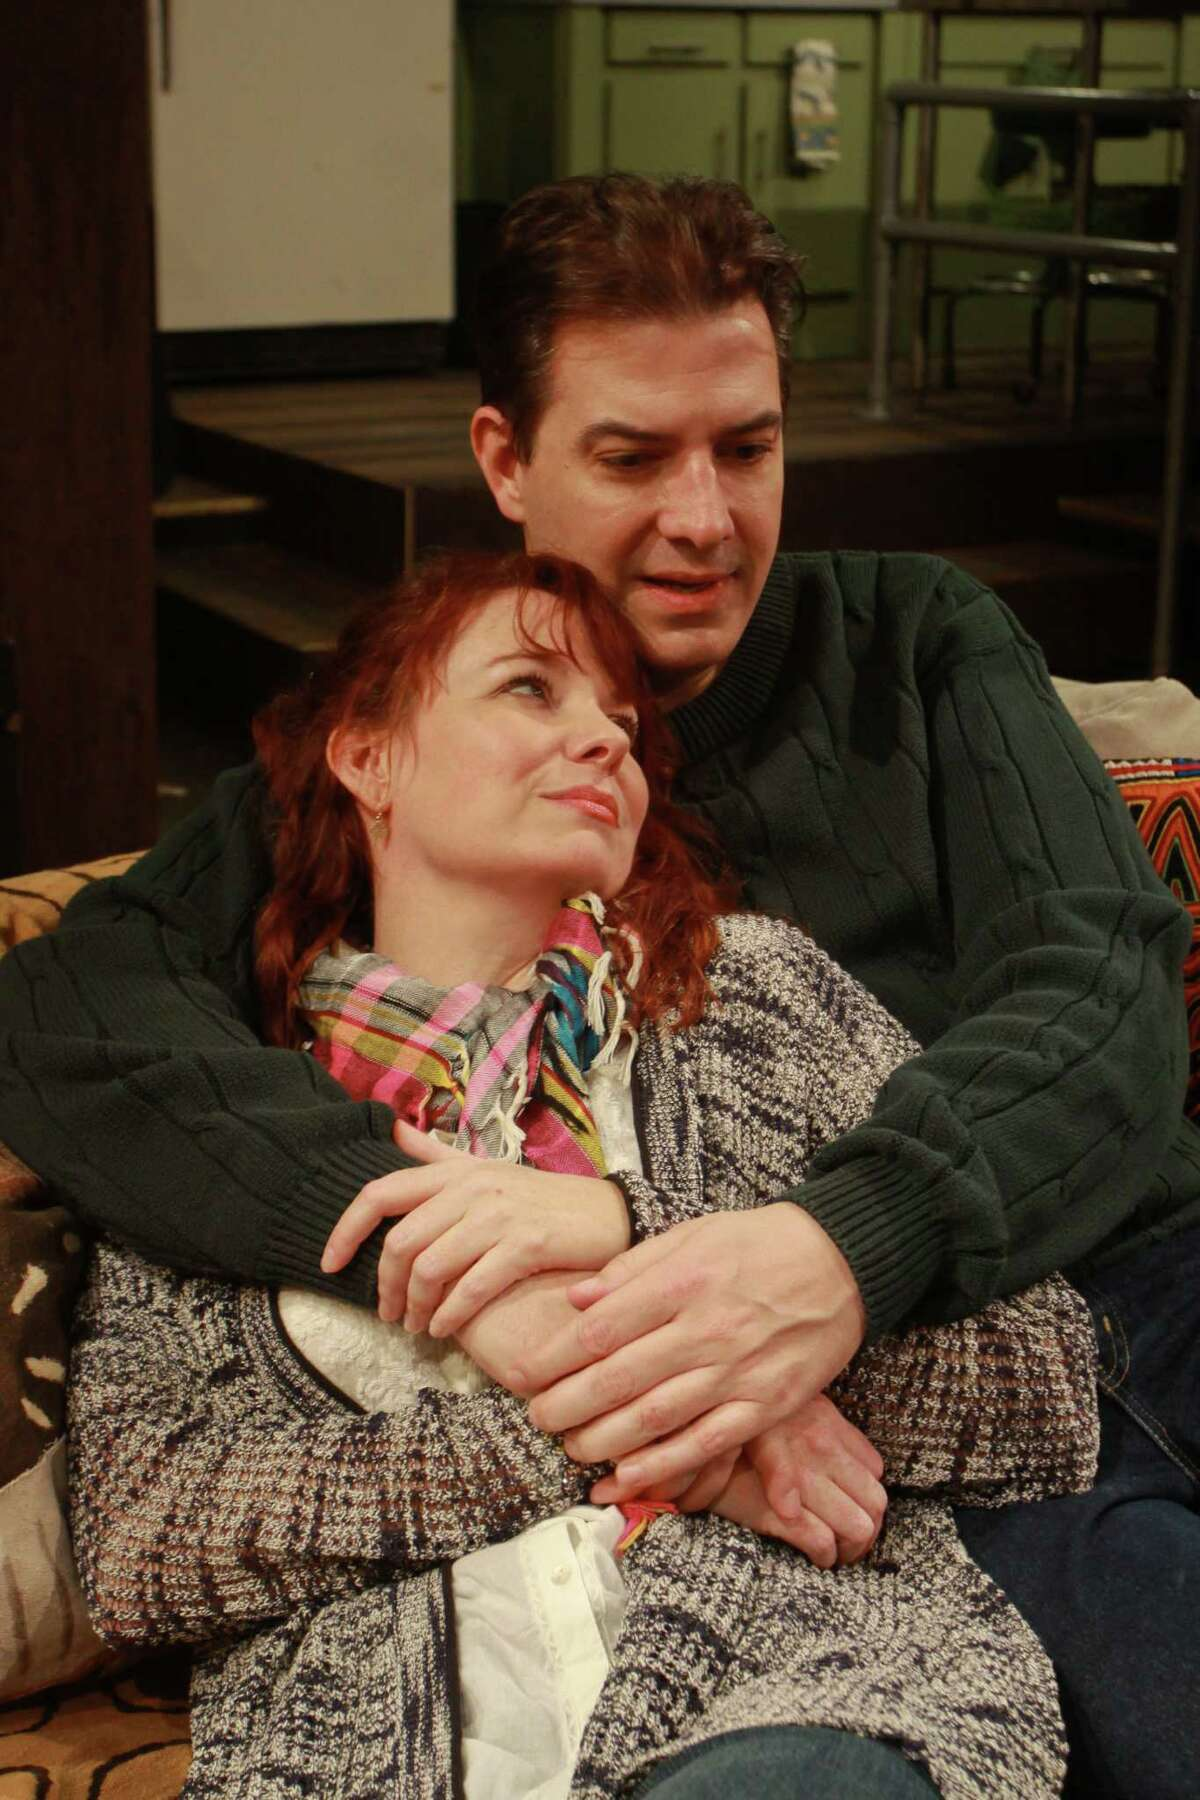 """(For the Chronicle/Gary Fountain, March 16, 2014) Sara Gaston as Sarah, and Sean Patrick Judge as James, in this scene from Main Street Theater's Houston premiere of Donald Margulies' play """"Time Stands Still."""""""